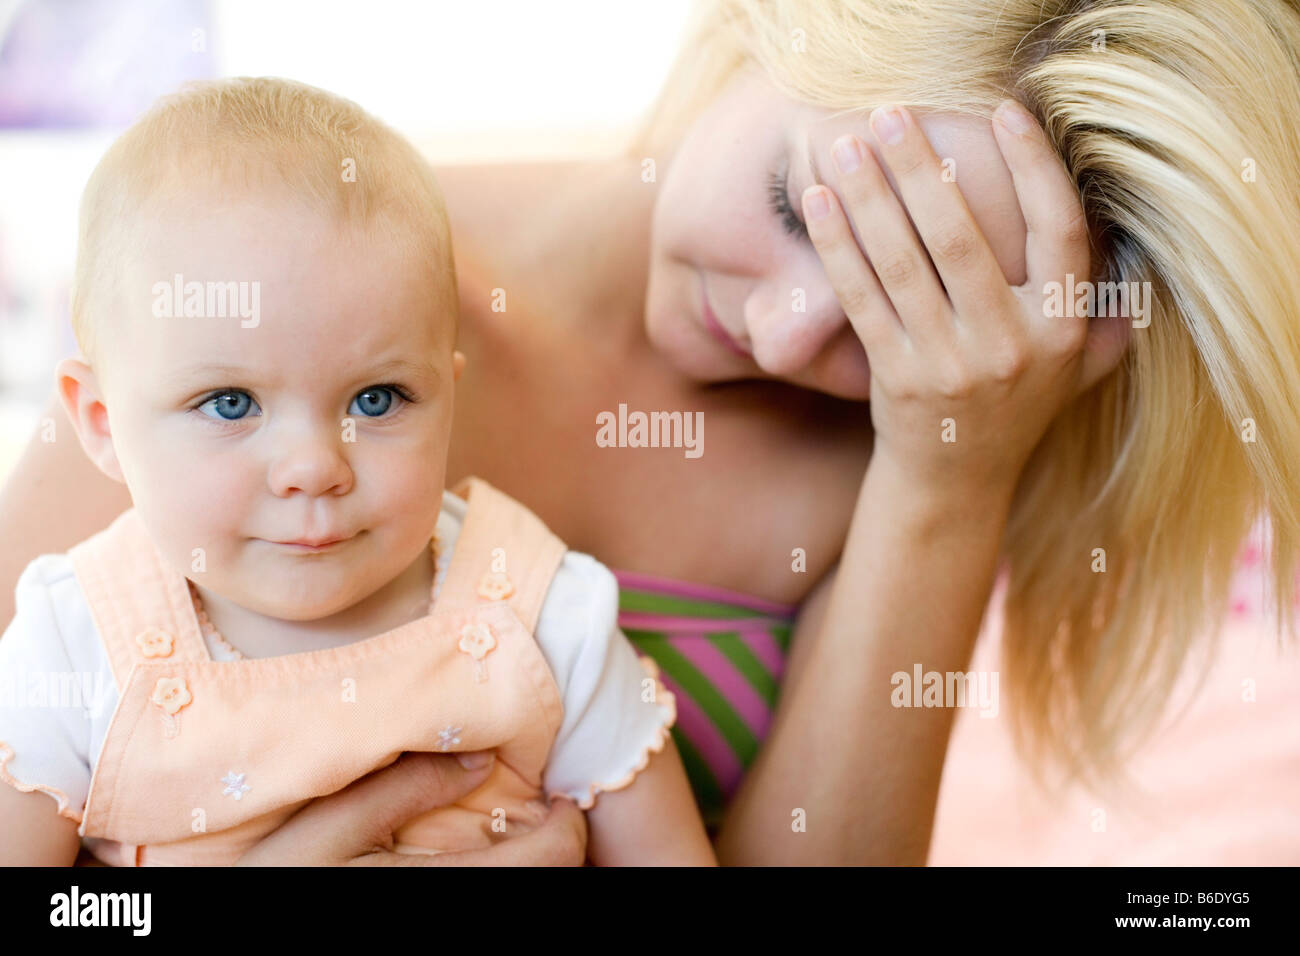 Teenage mother and baby. Stressed young mother holding her 10 month old daughter. Posed by models. - Stock Image